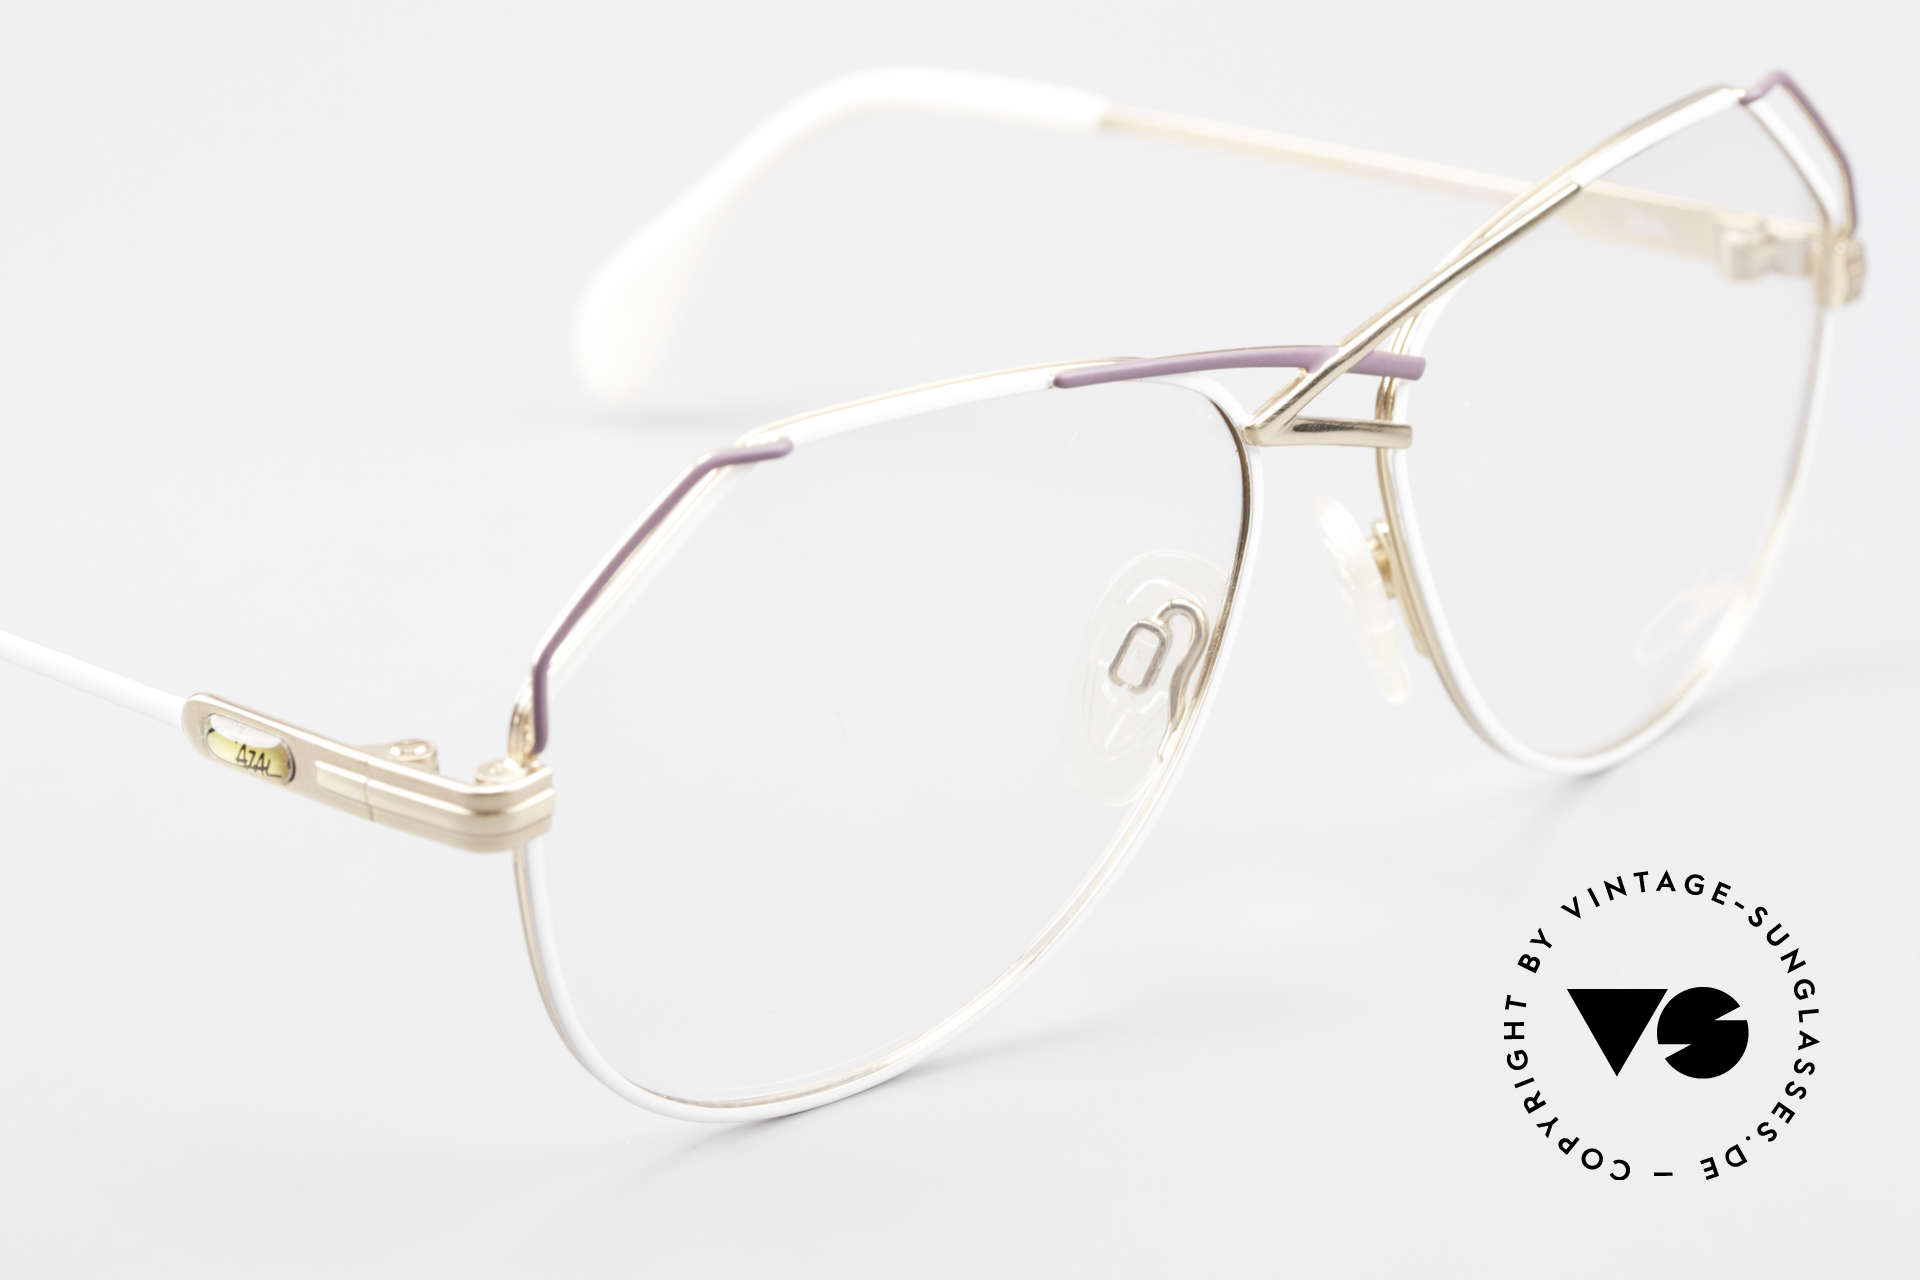 Cazal 229 West Germany Vintage Cazal, never worn (like all our vintage frames by Cazal), Made for Women